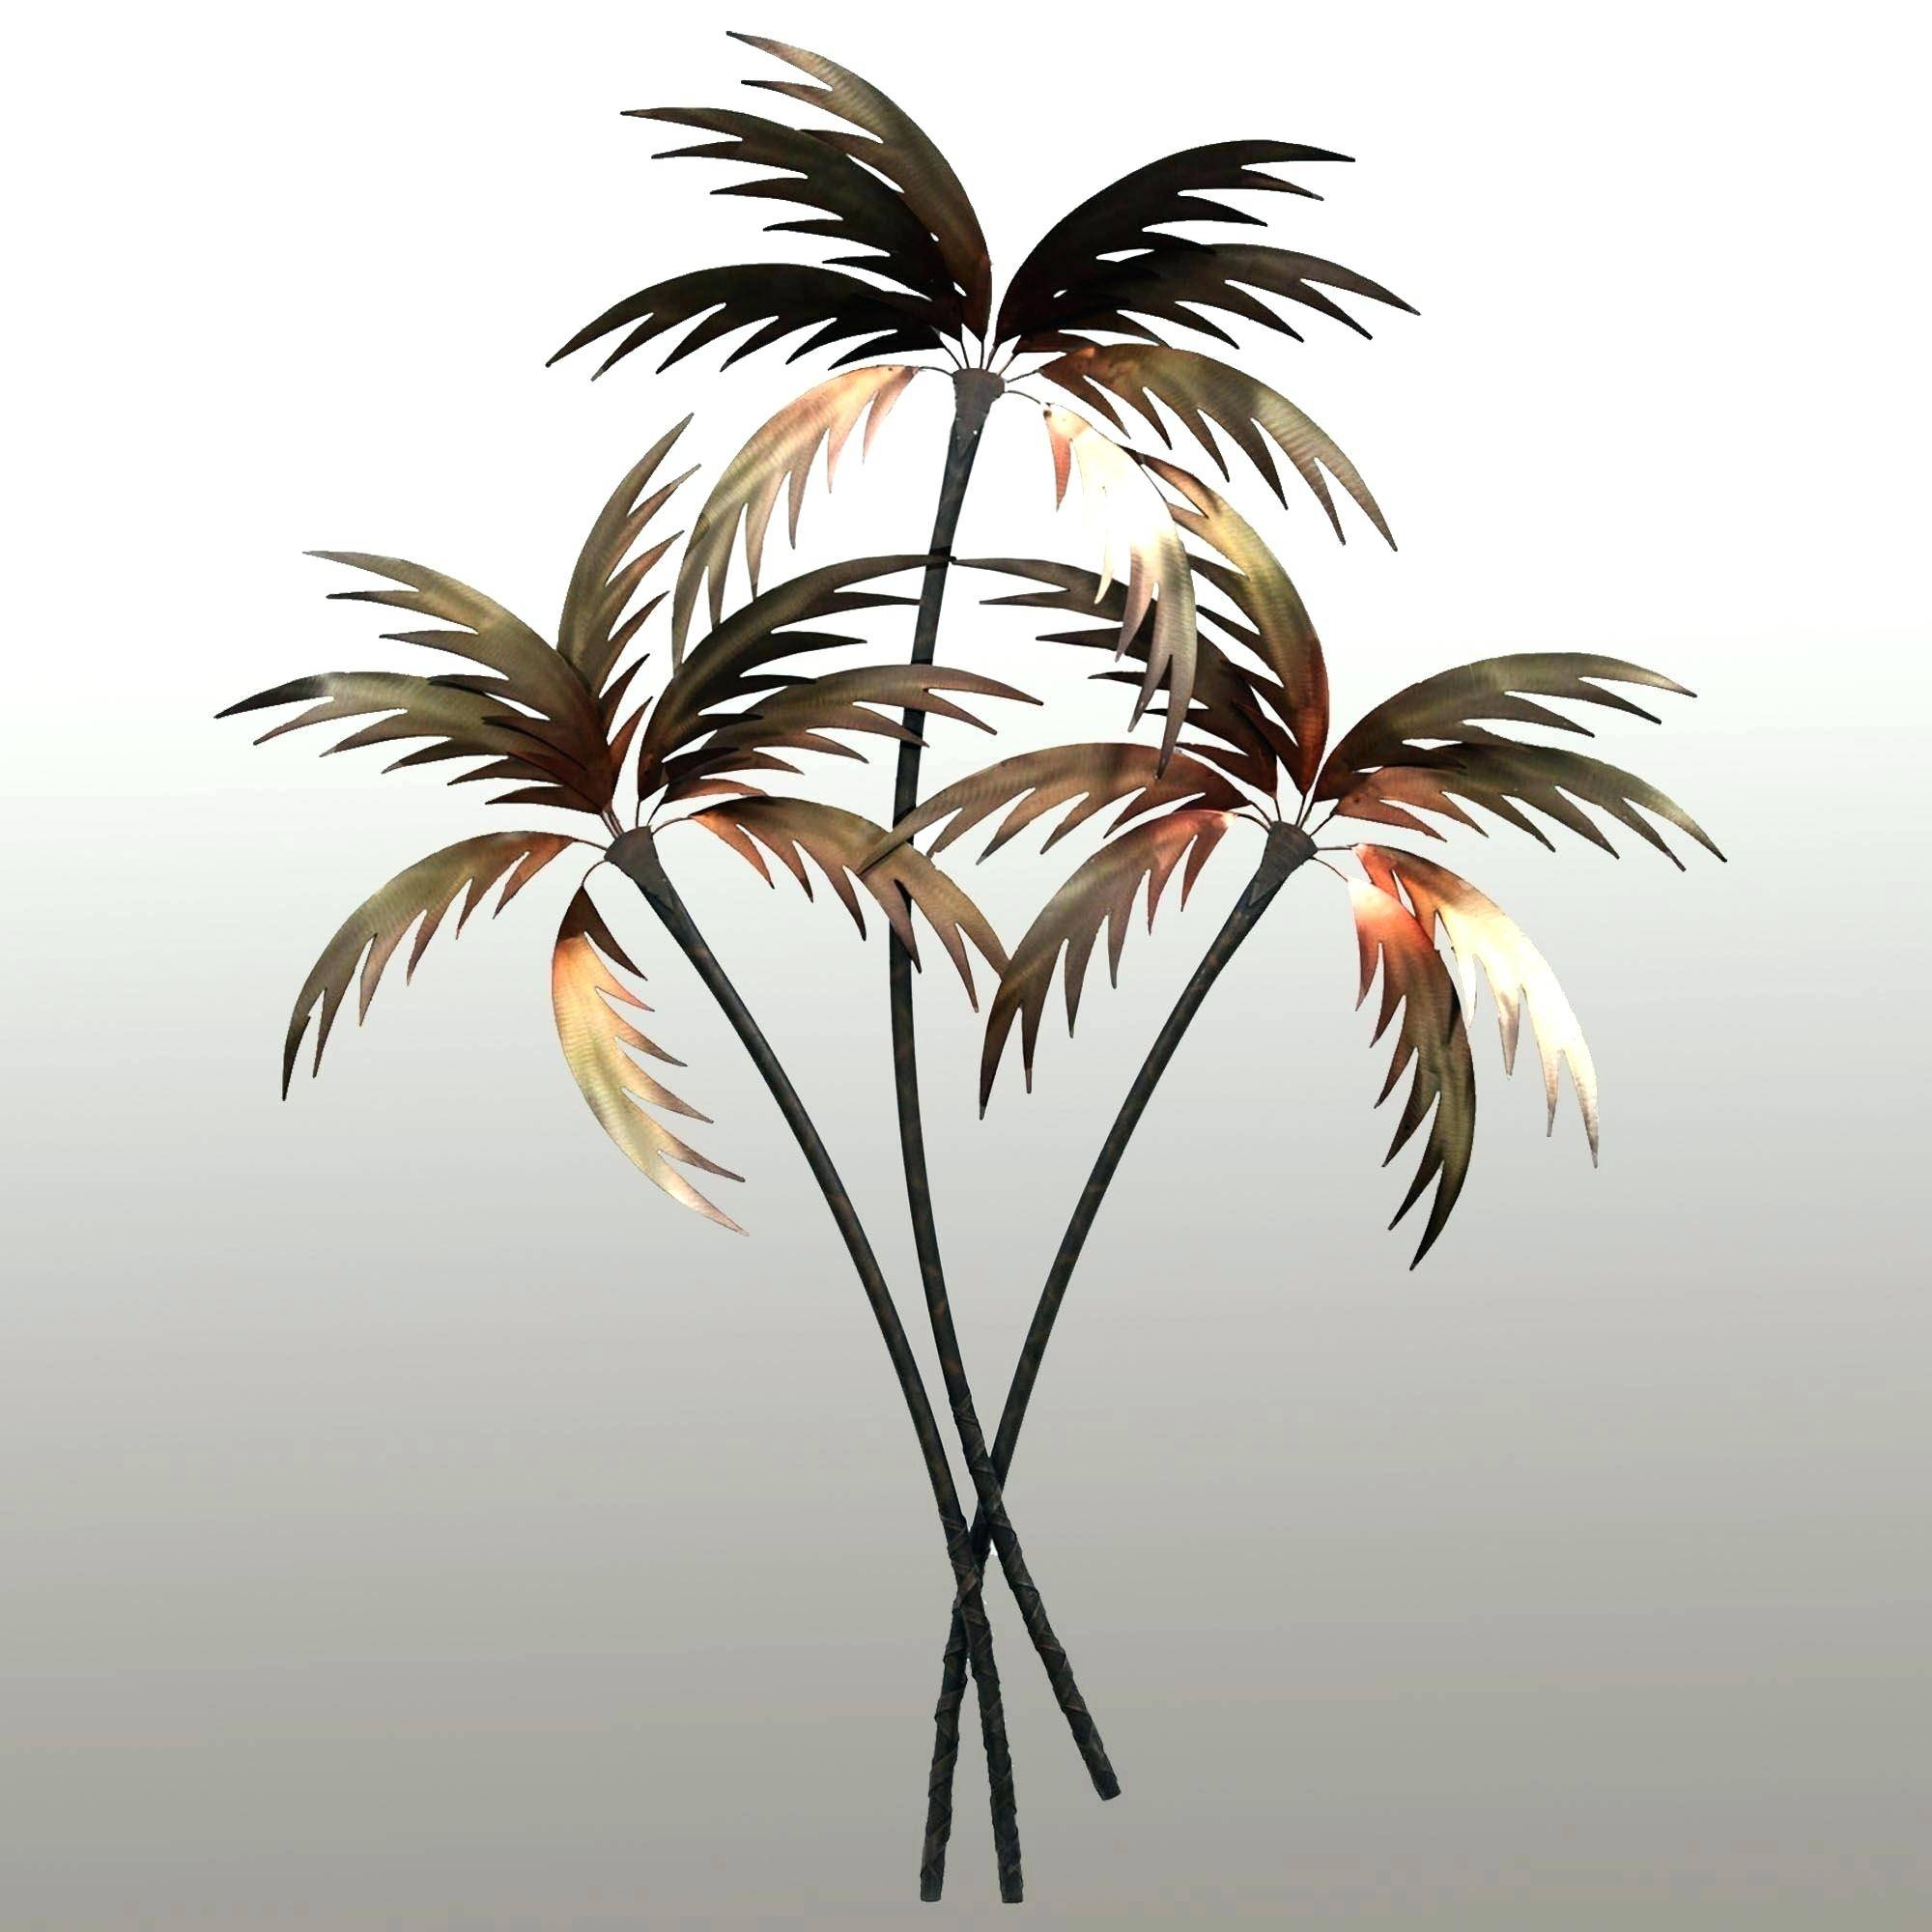 Wall Arts ~ Cool Palm Tree Wall Art Metal Family Tree Wall Art Diy For 2017 Metal Wall Art Palm Trees (View 12 of 20)